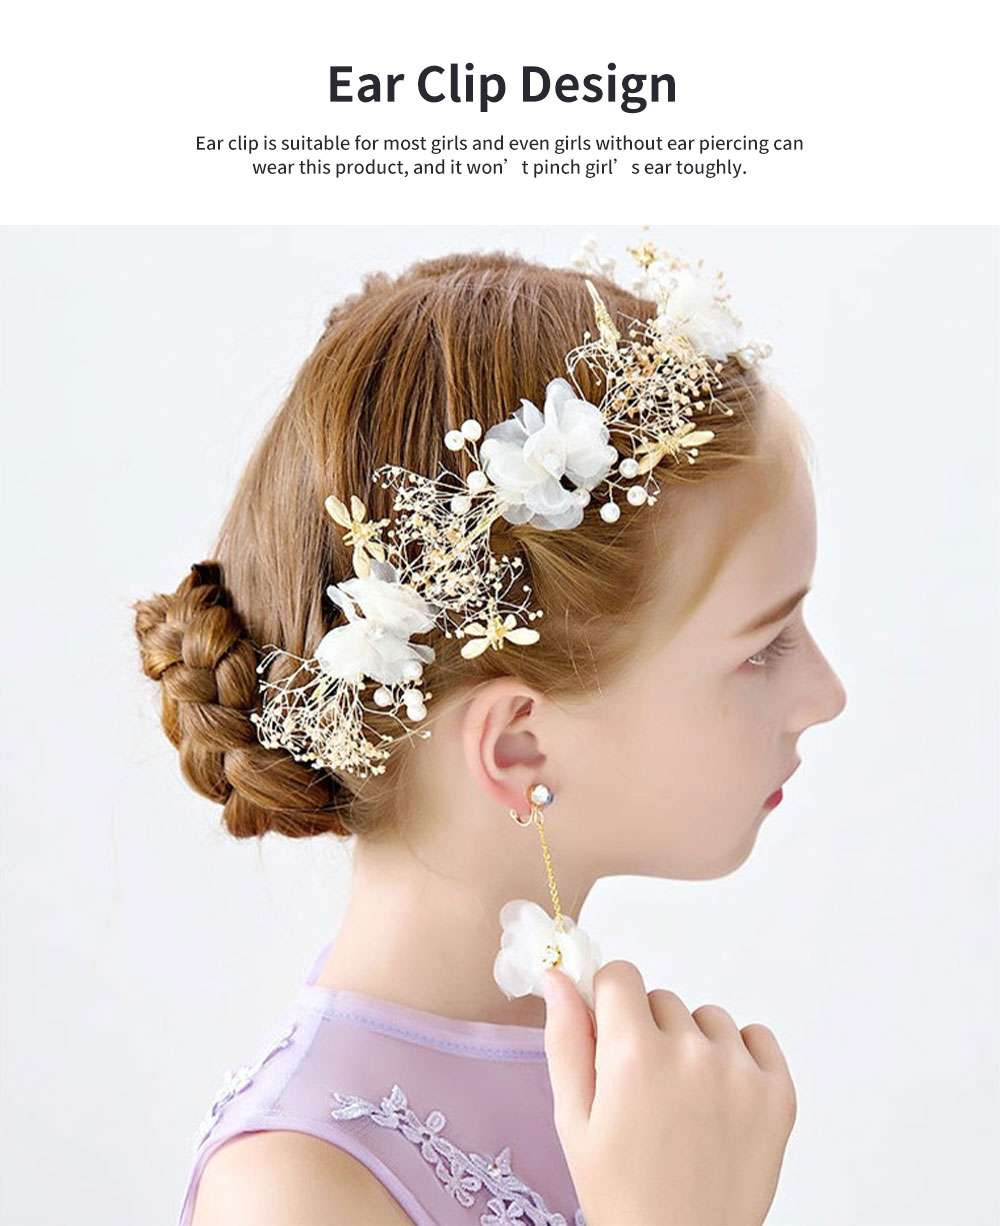 Fancy Flower Bees Model Artificial Pearl Decorative Hair Ornament Delicate Girl Crown Ear Clip Accessories Suit 3PCS 4